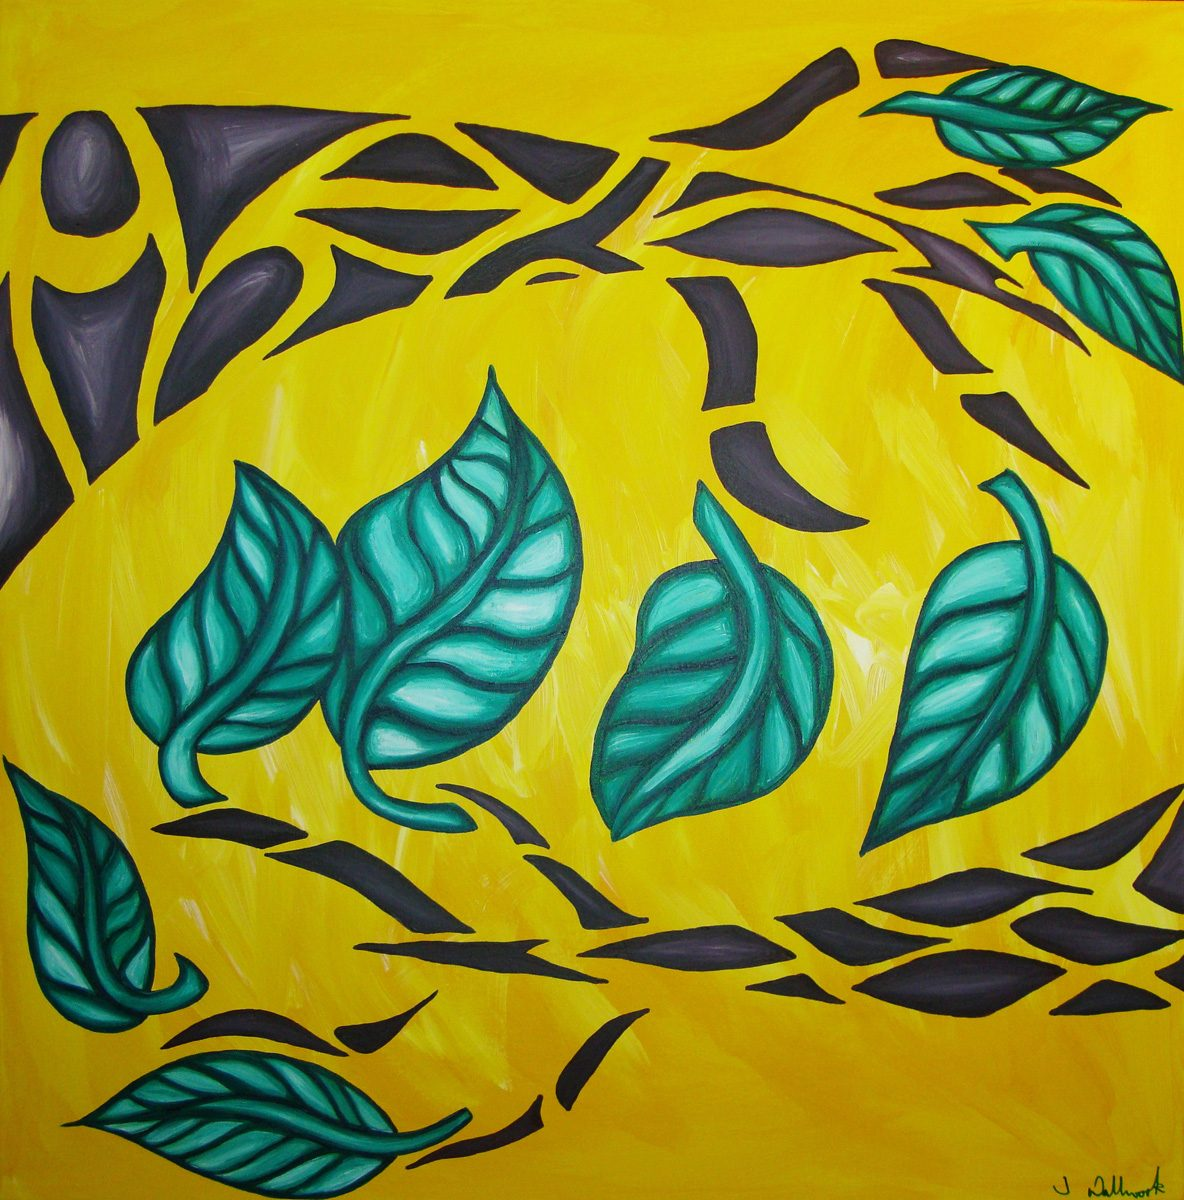 The image shows a piece of artwork by Jina Wallwork. It is a painting of trees. Stylistically this piece of artwork has links with expressionism.